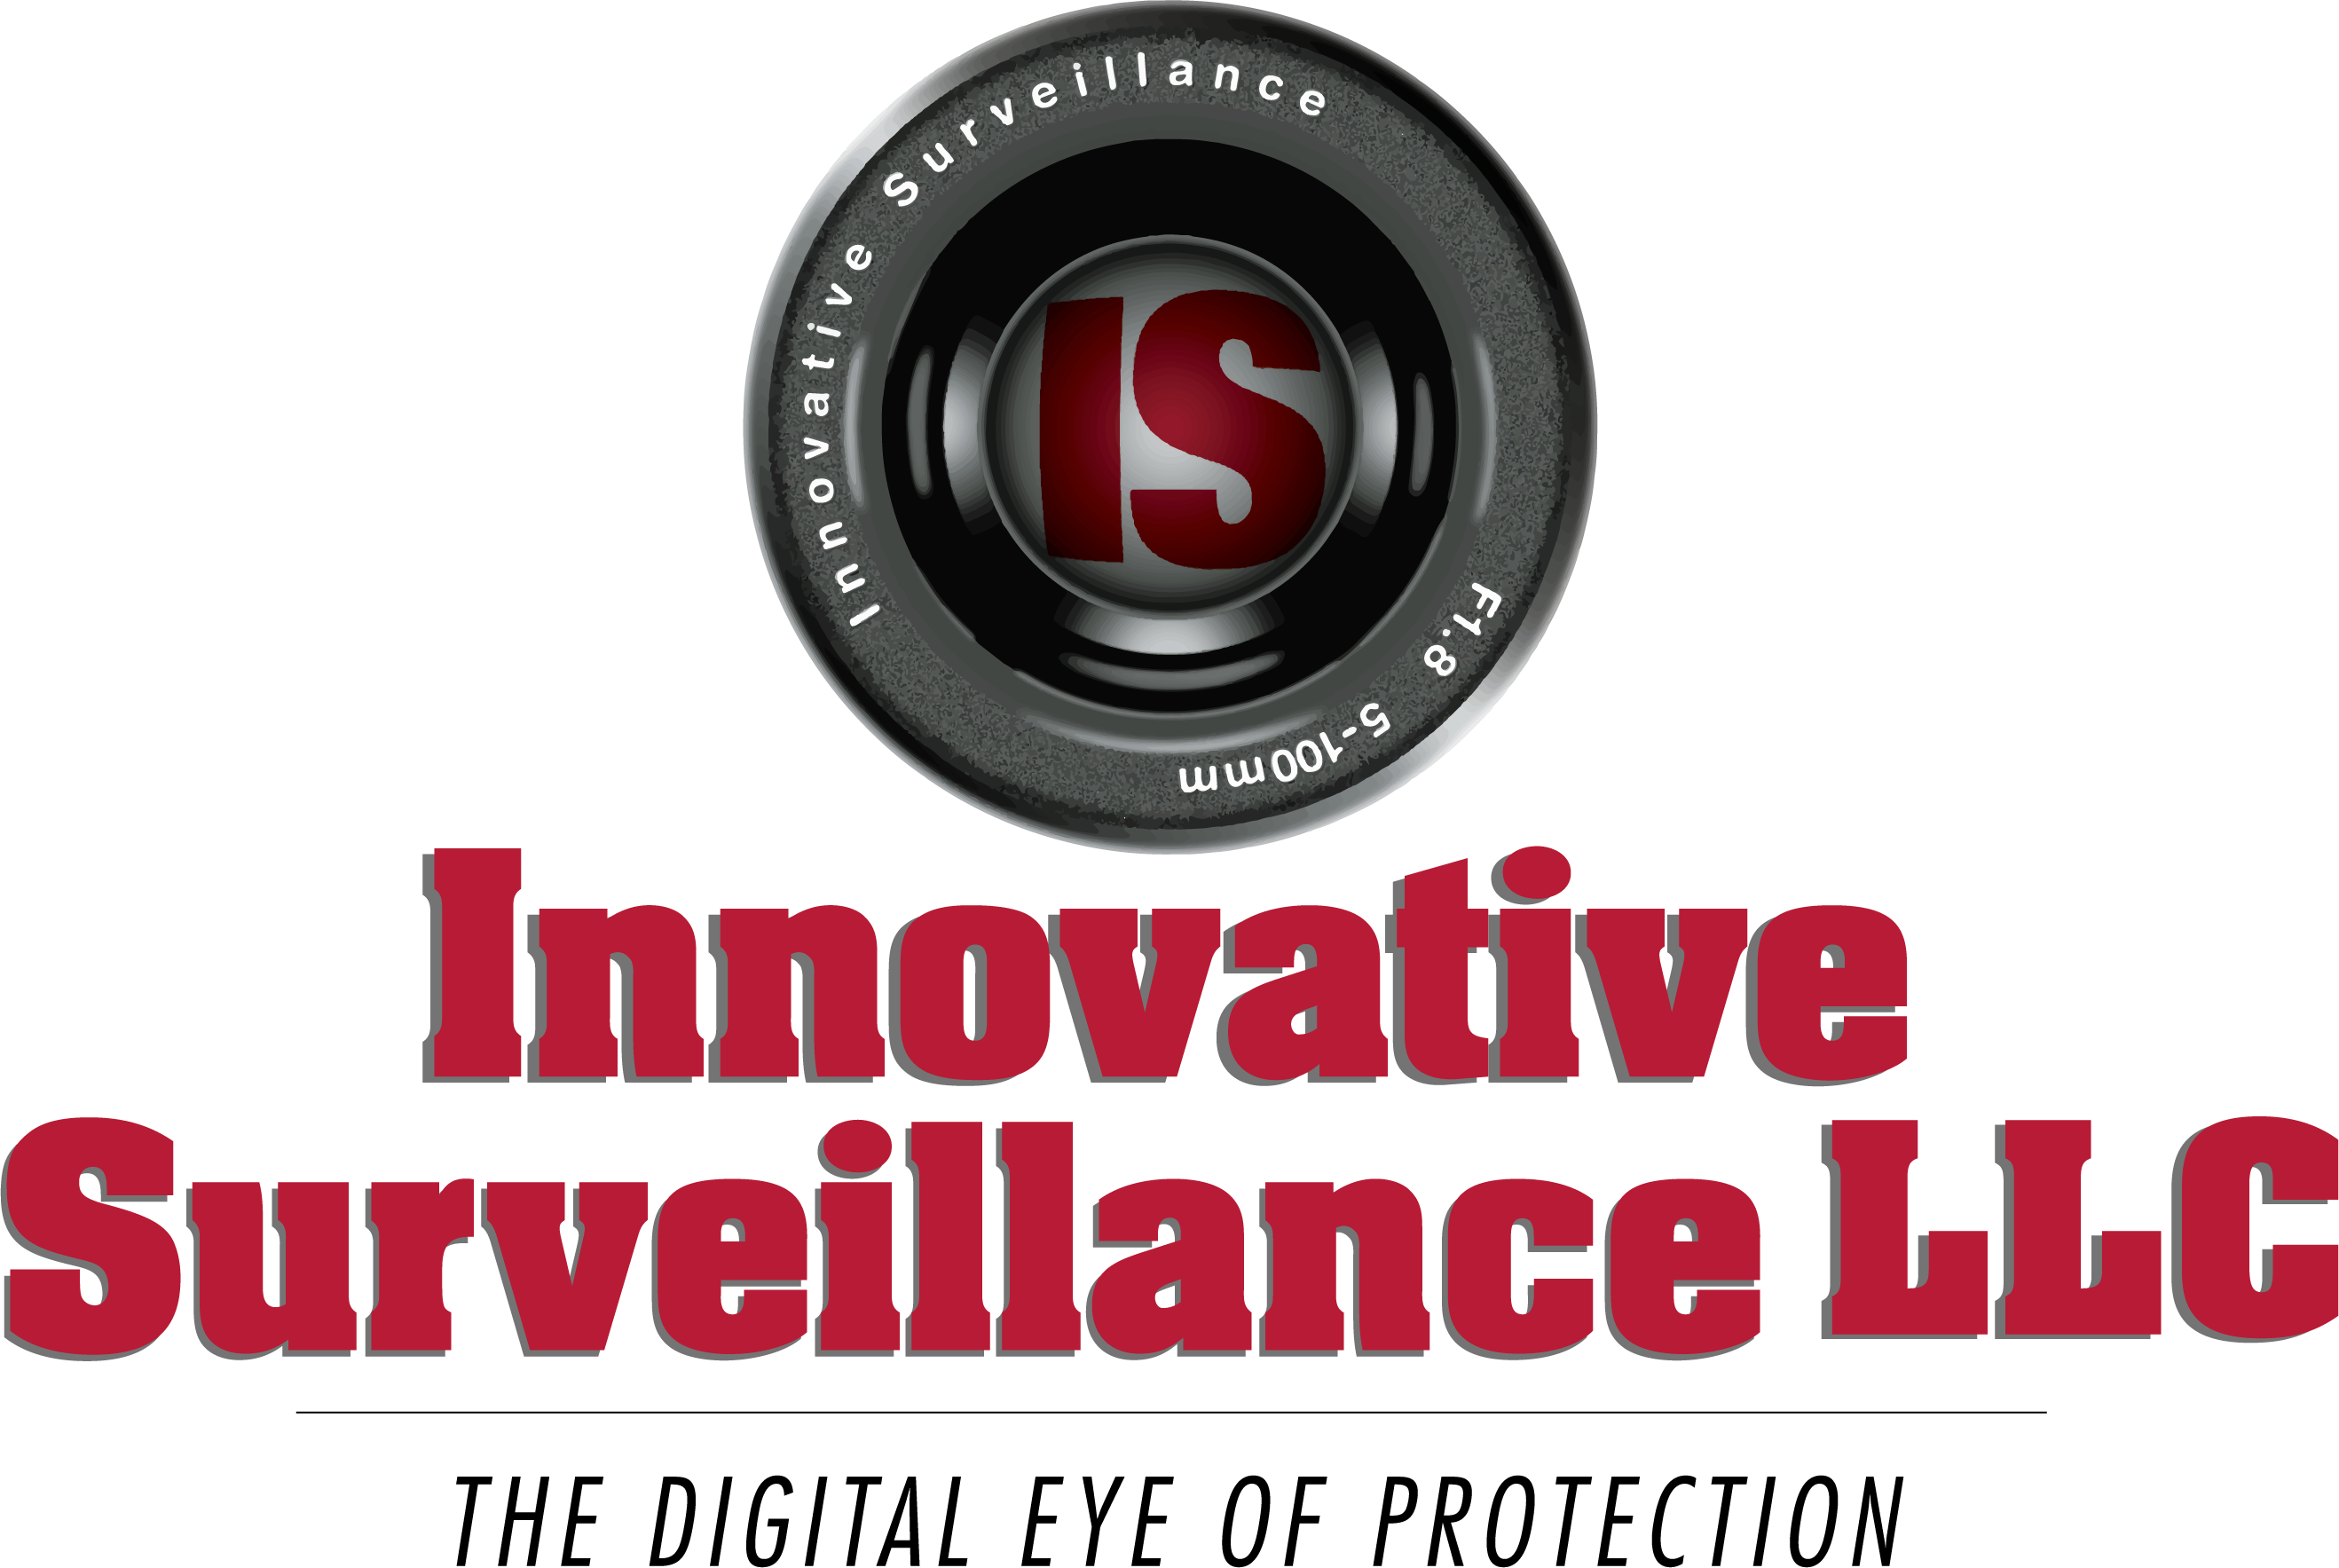 Innovative-surveillance-logo-badge